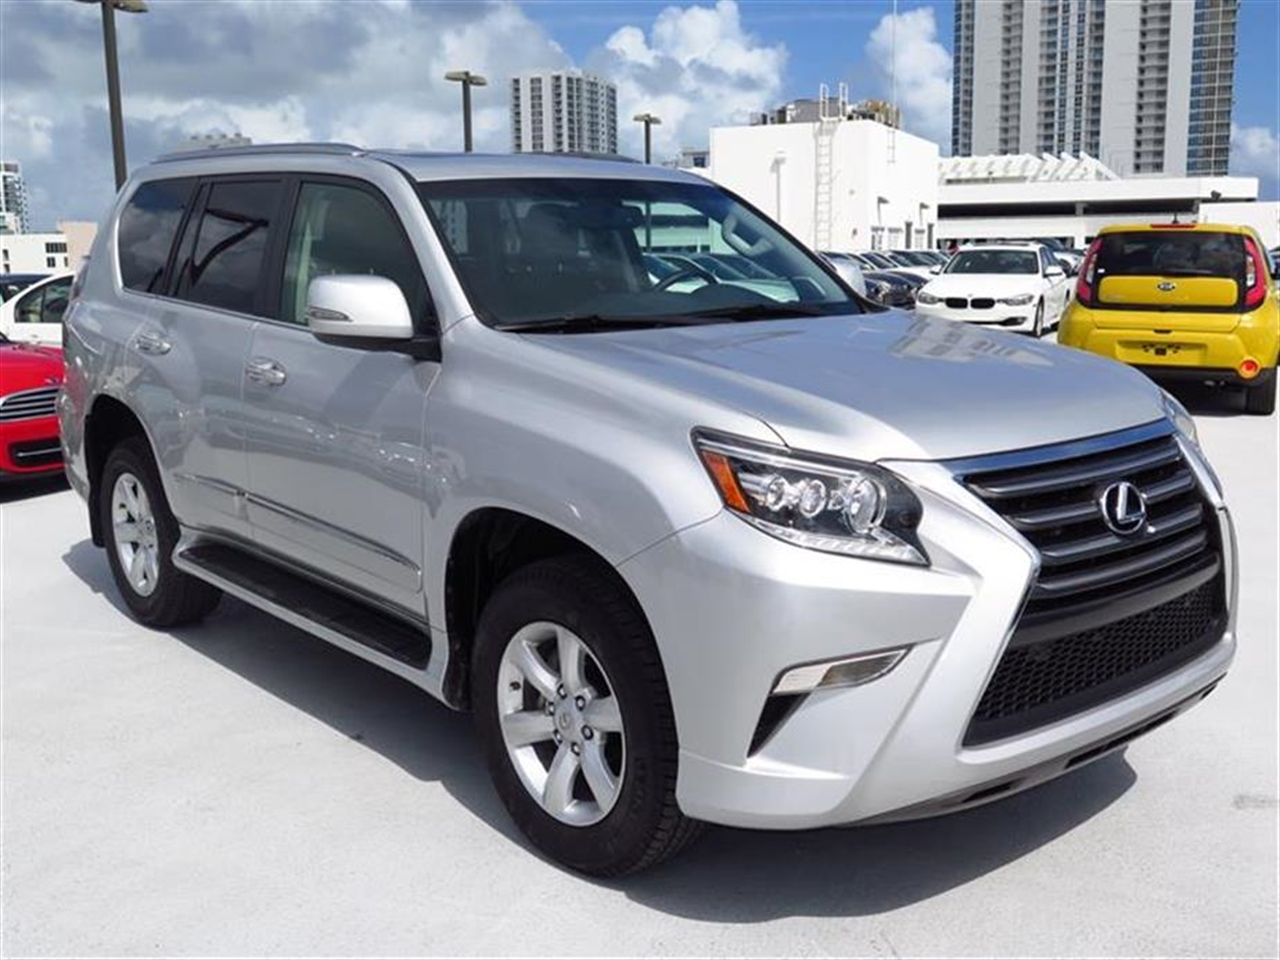 2014 LEXUS GX 460 4WD 4dr 18188 miles 2 Seatback Storage Pockets 3 12V DC Power Outlets 3 12V D